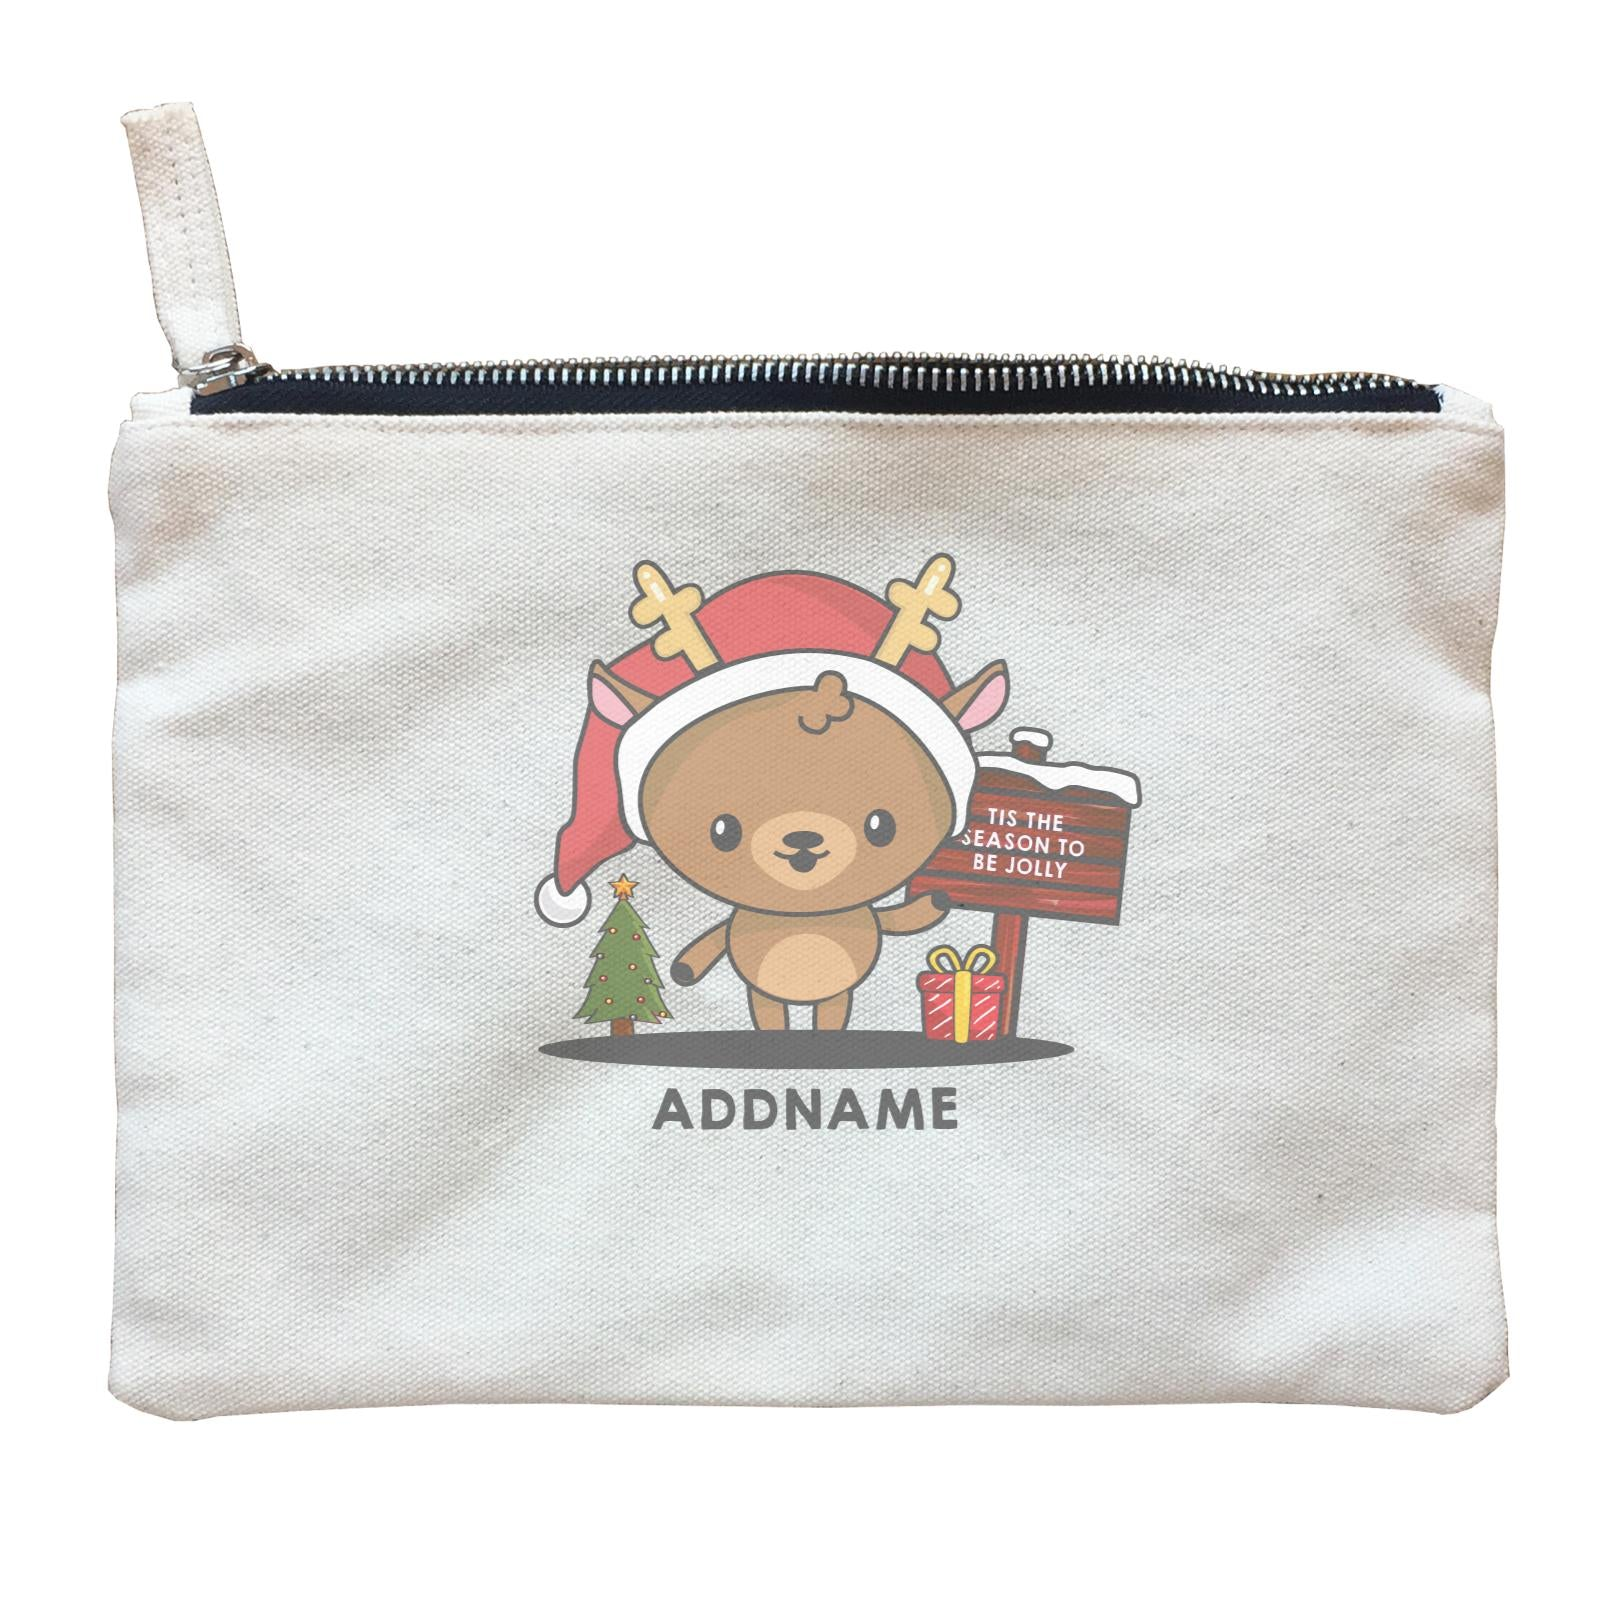 Christmas Cute Jolly Series Deer Addname Zipper Pouch